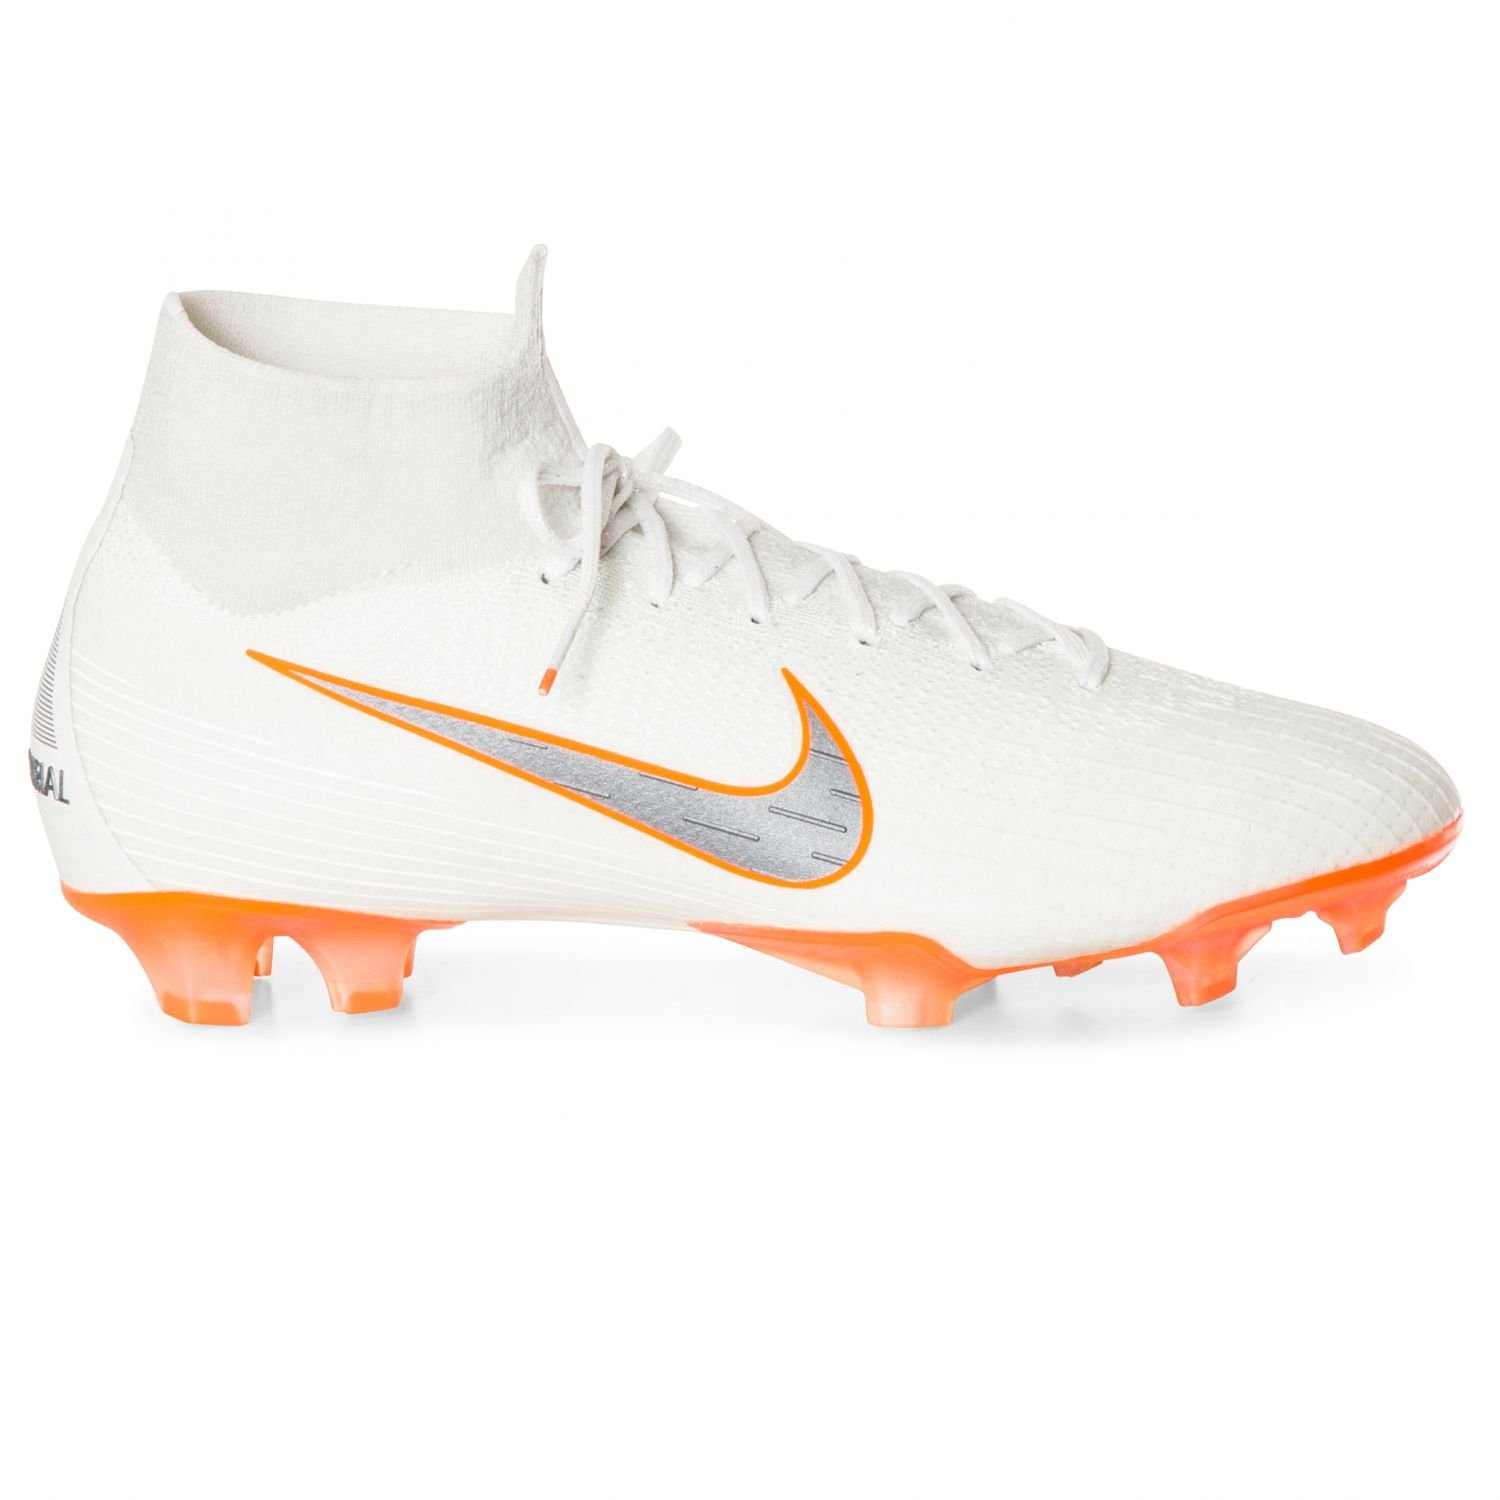 sale retailer a5f9a ecd0b Galleon - NIKE Mens Superfly 6 Elite FG Firm-Ground Football Boot (9.5 M  US)